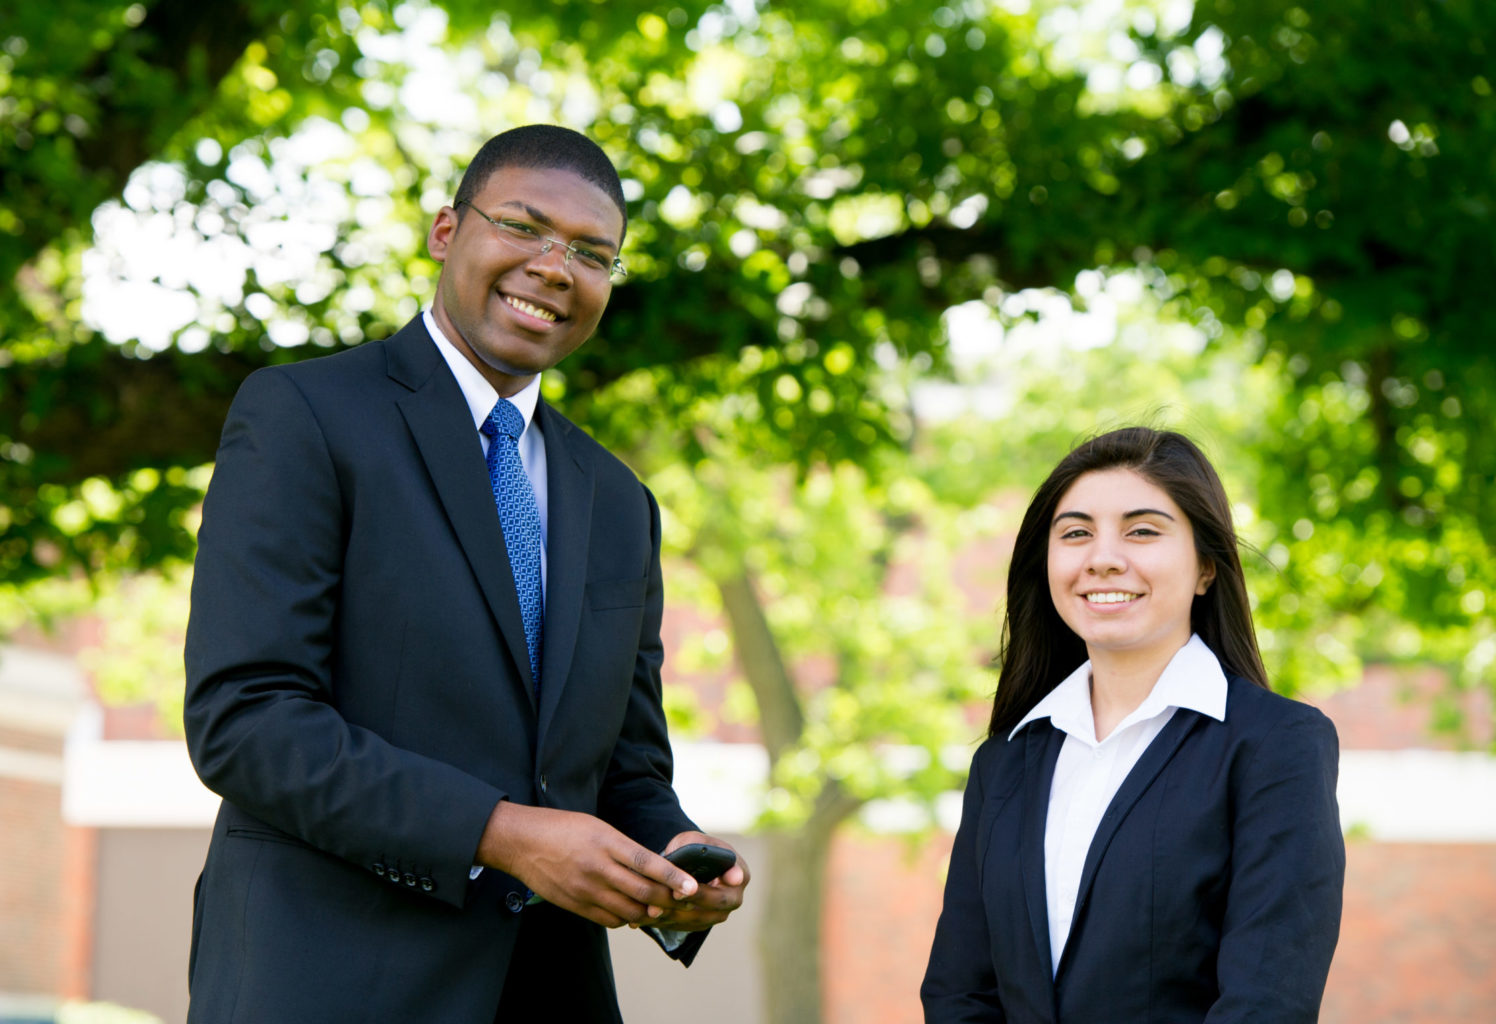 Two students dressed professionally standing outside on campus.